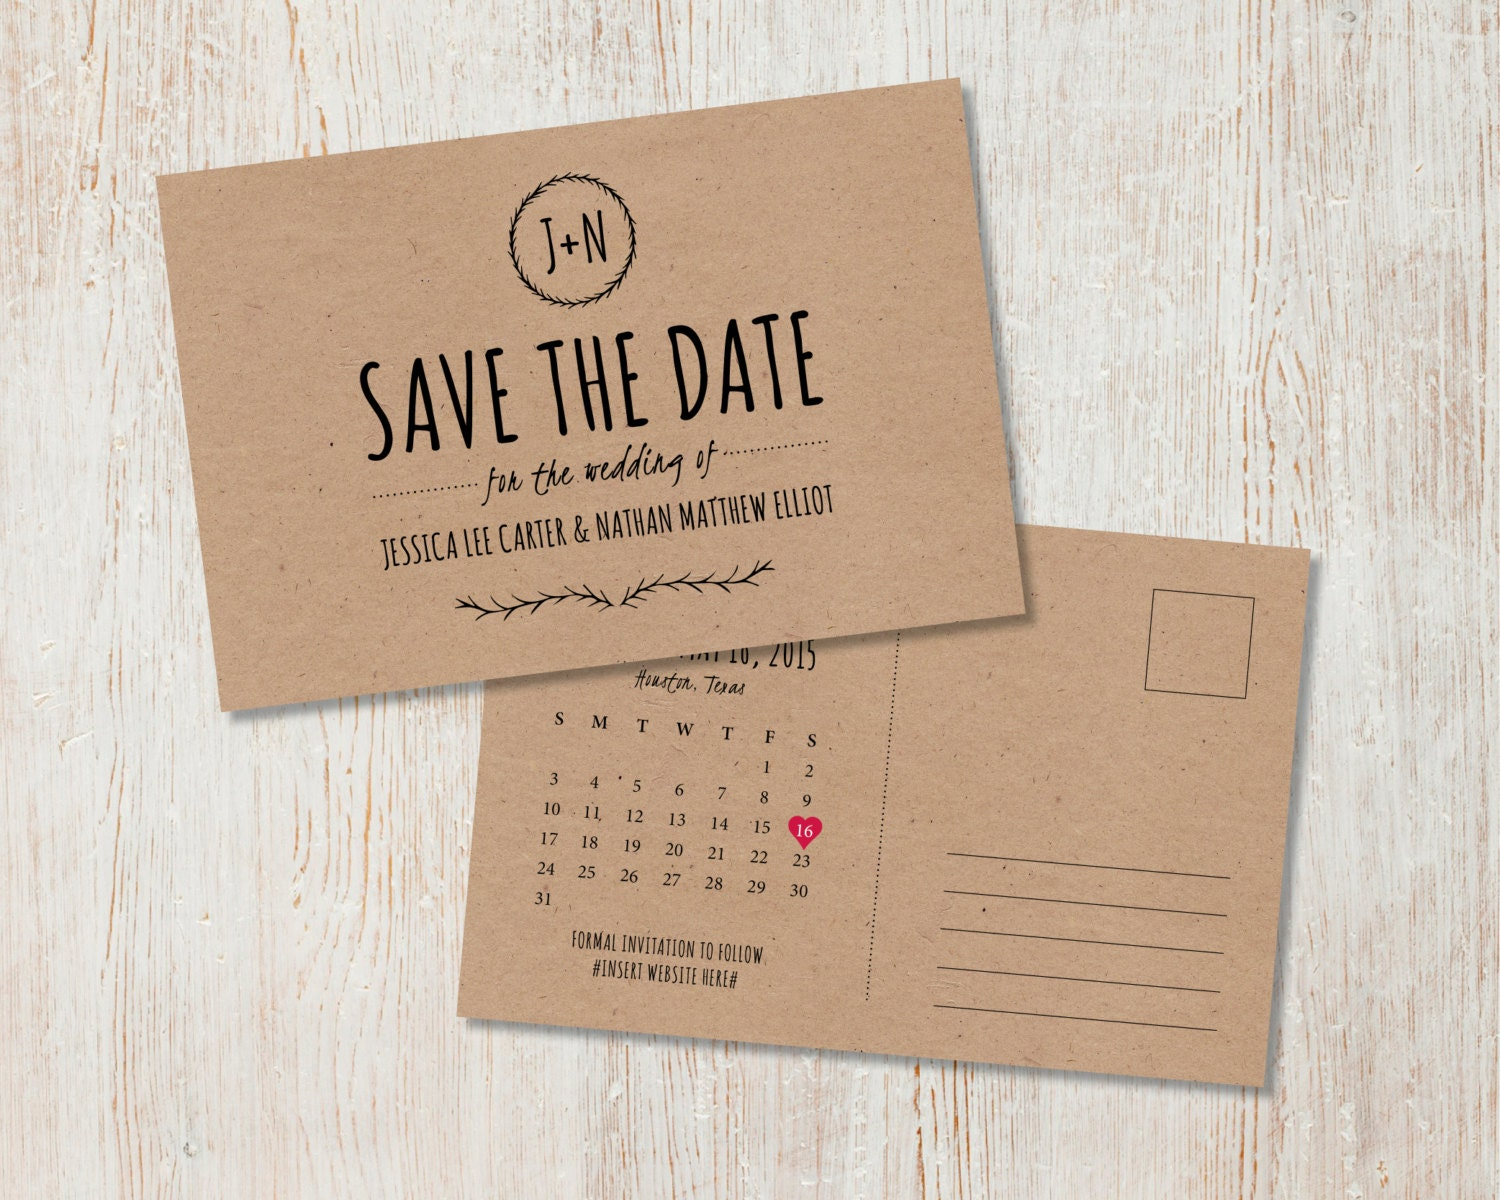 Save the date | Sam Osborne Weddings